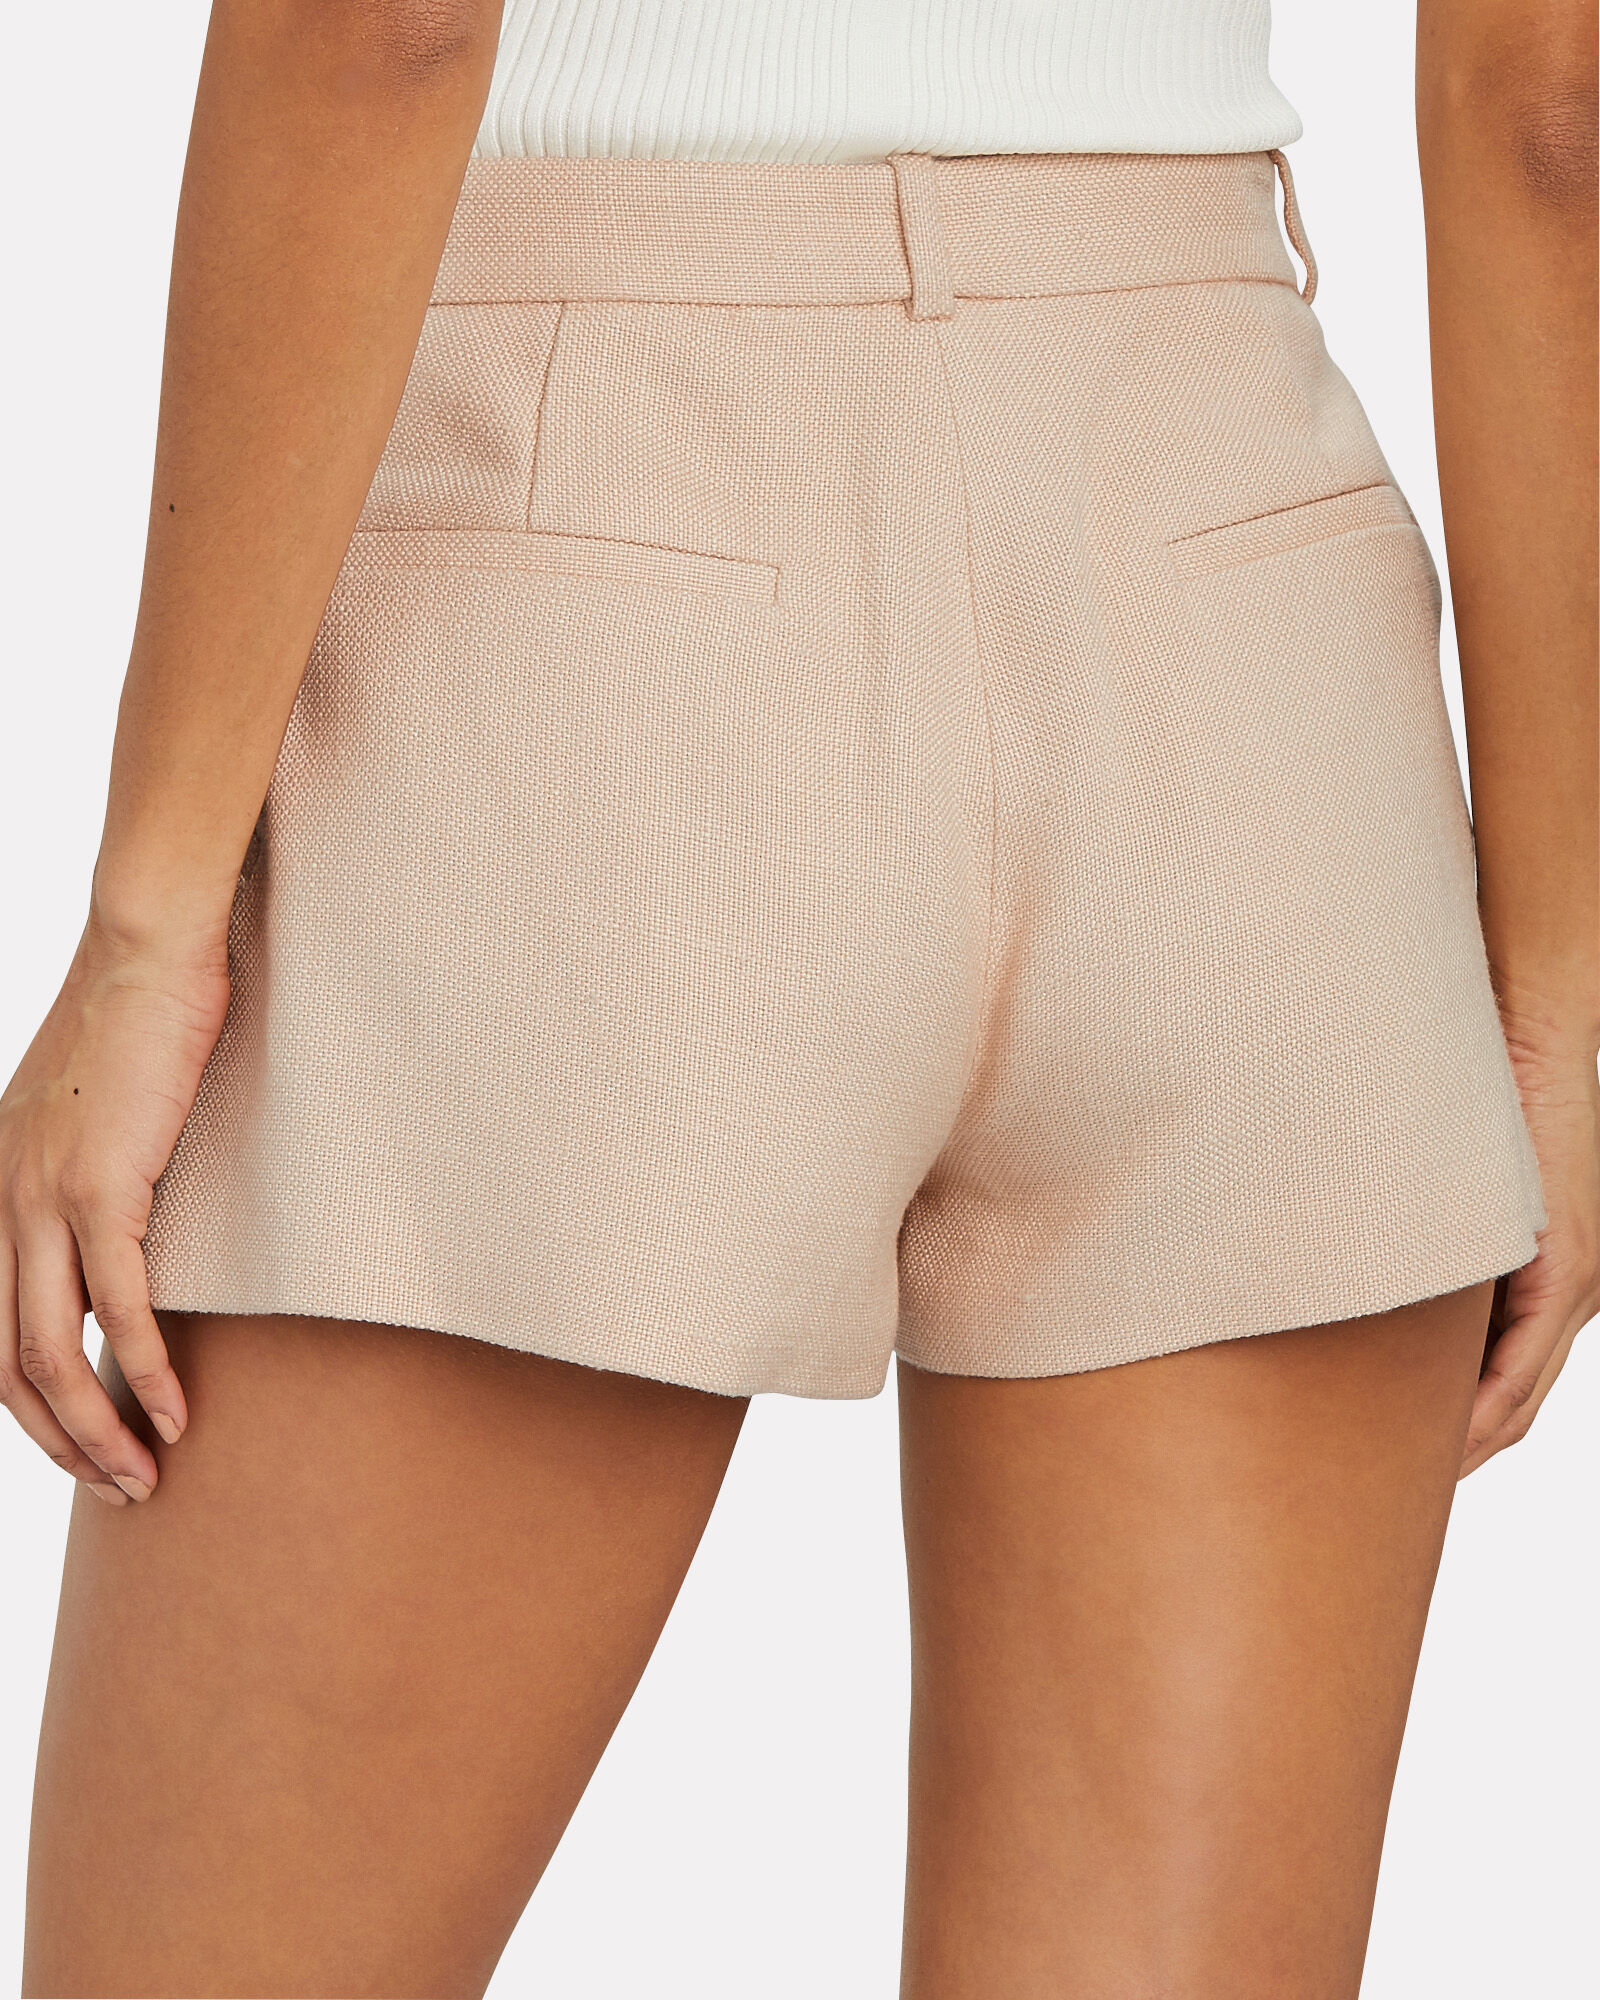 Tailored Suiting Shorts, BLUSH, hi-res